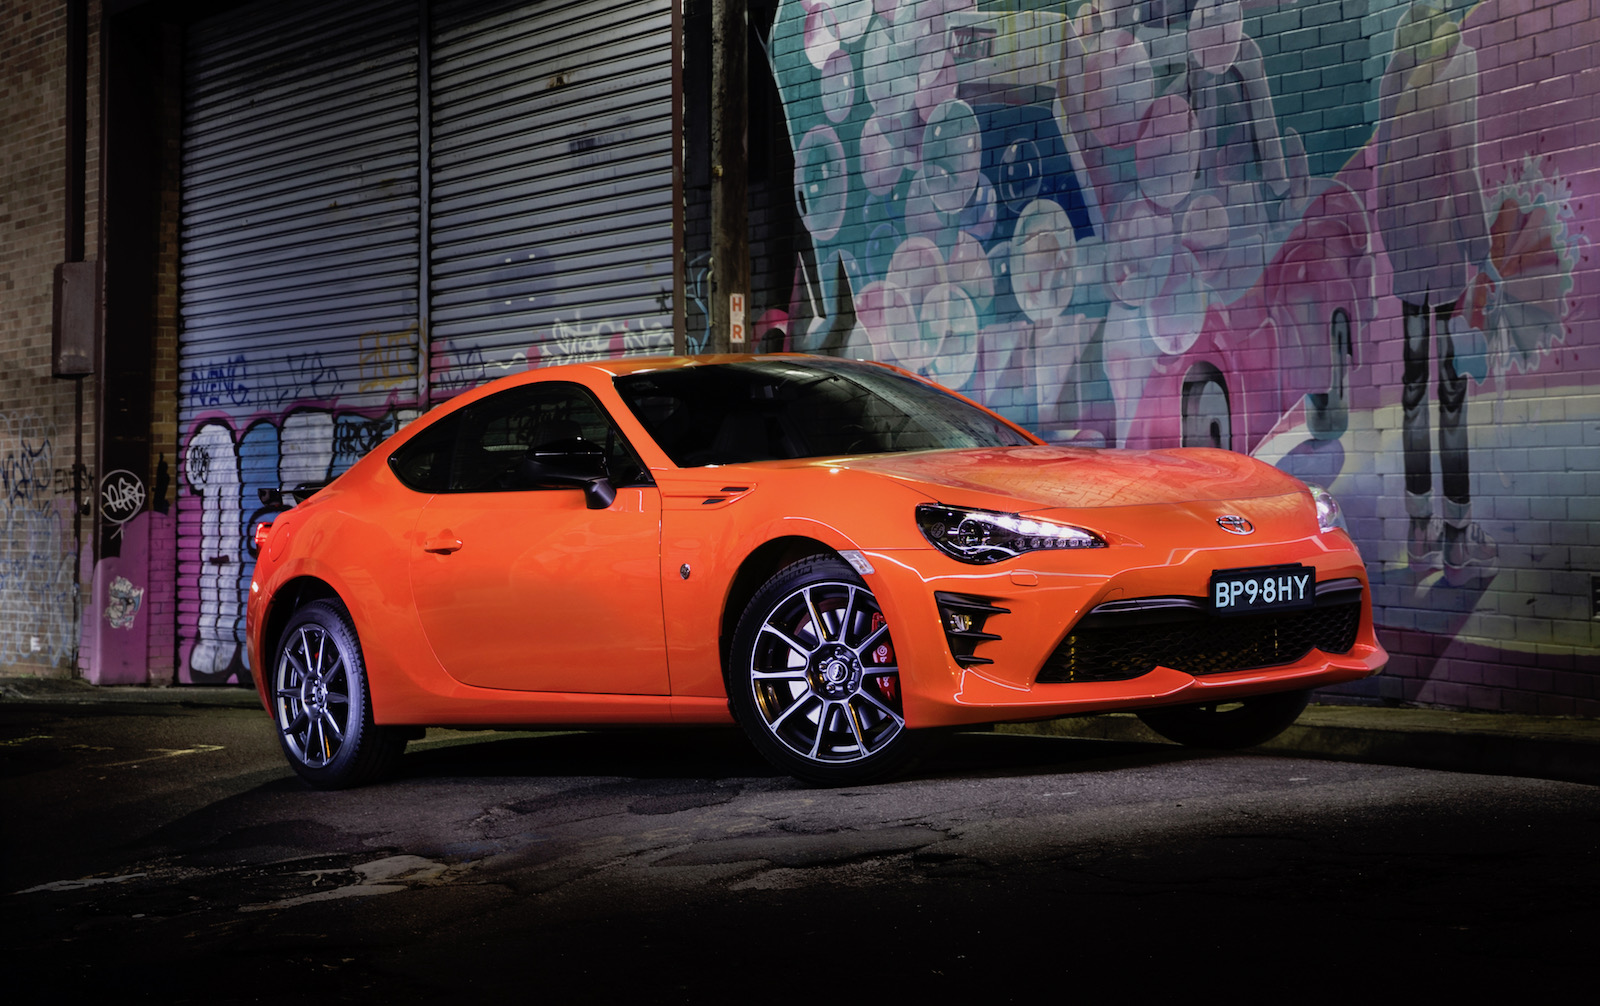 Mazda Mx5 For Sale >> Toyota 86 performance pack edition on sale in Australia ...